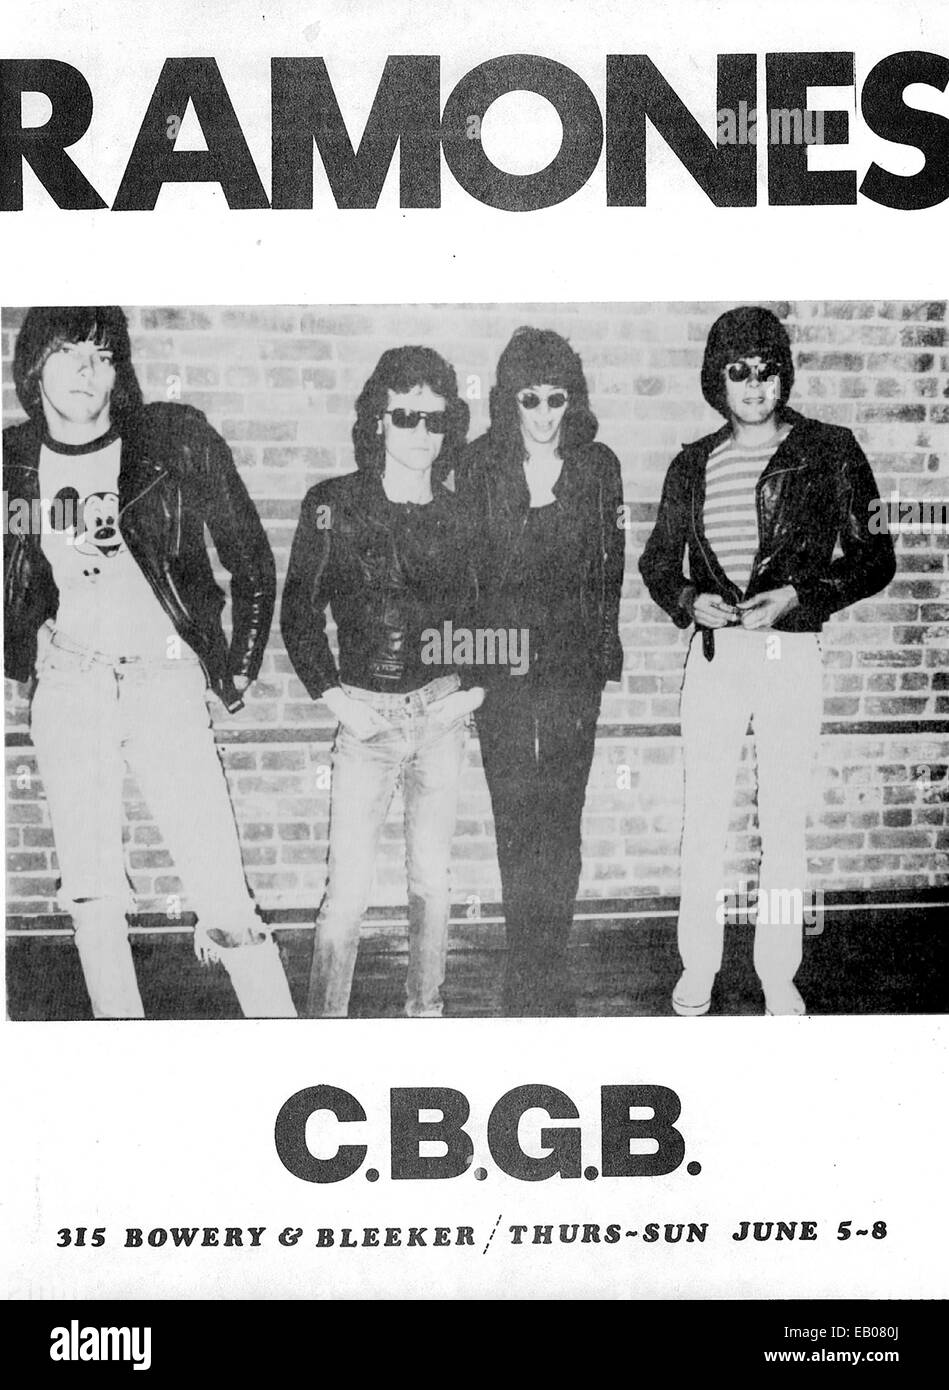 THE RAMONES, circa 1970s. Flyer promoting Ramones concert at CBGB in New York City. - Stock Image